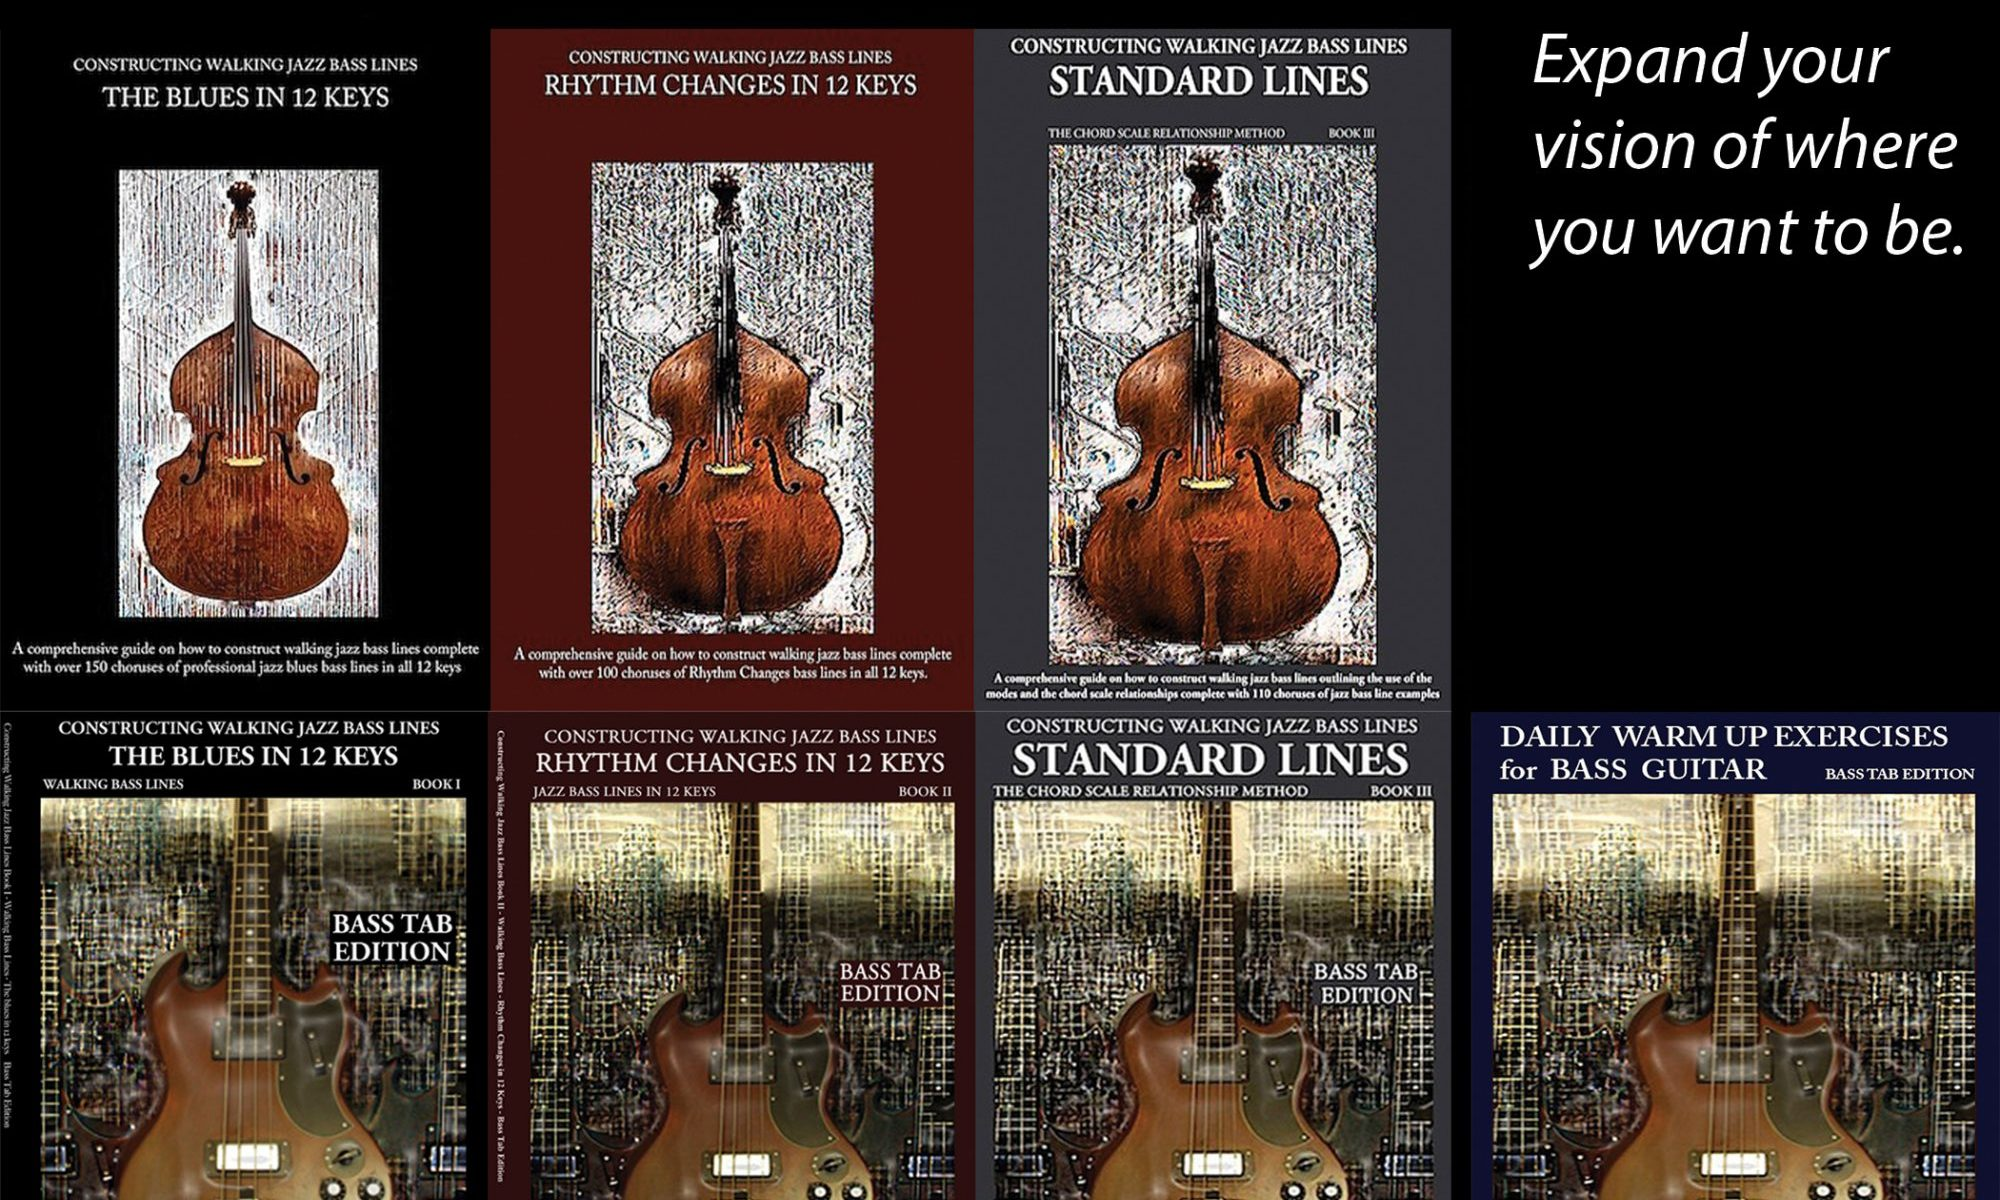 Jazz bass books in 12 keys, walking bass lines in 12 keys